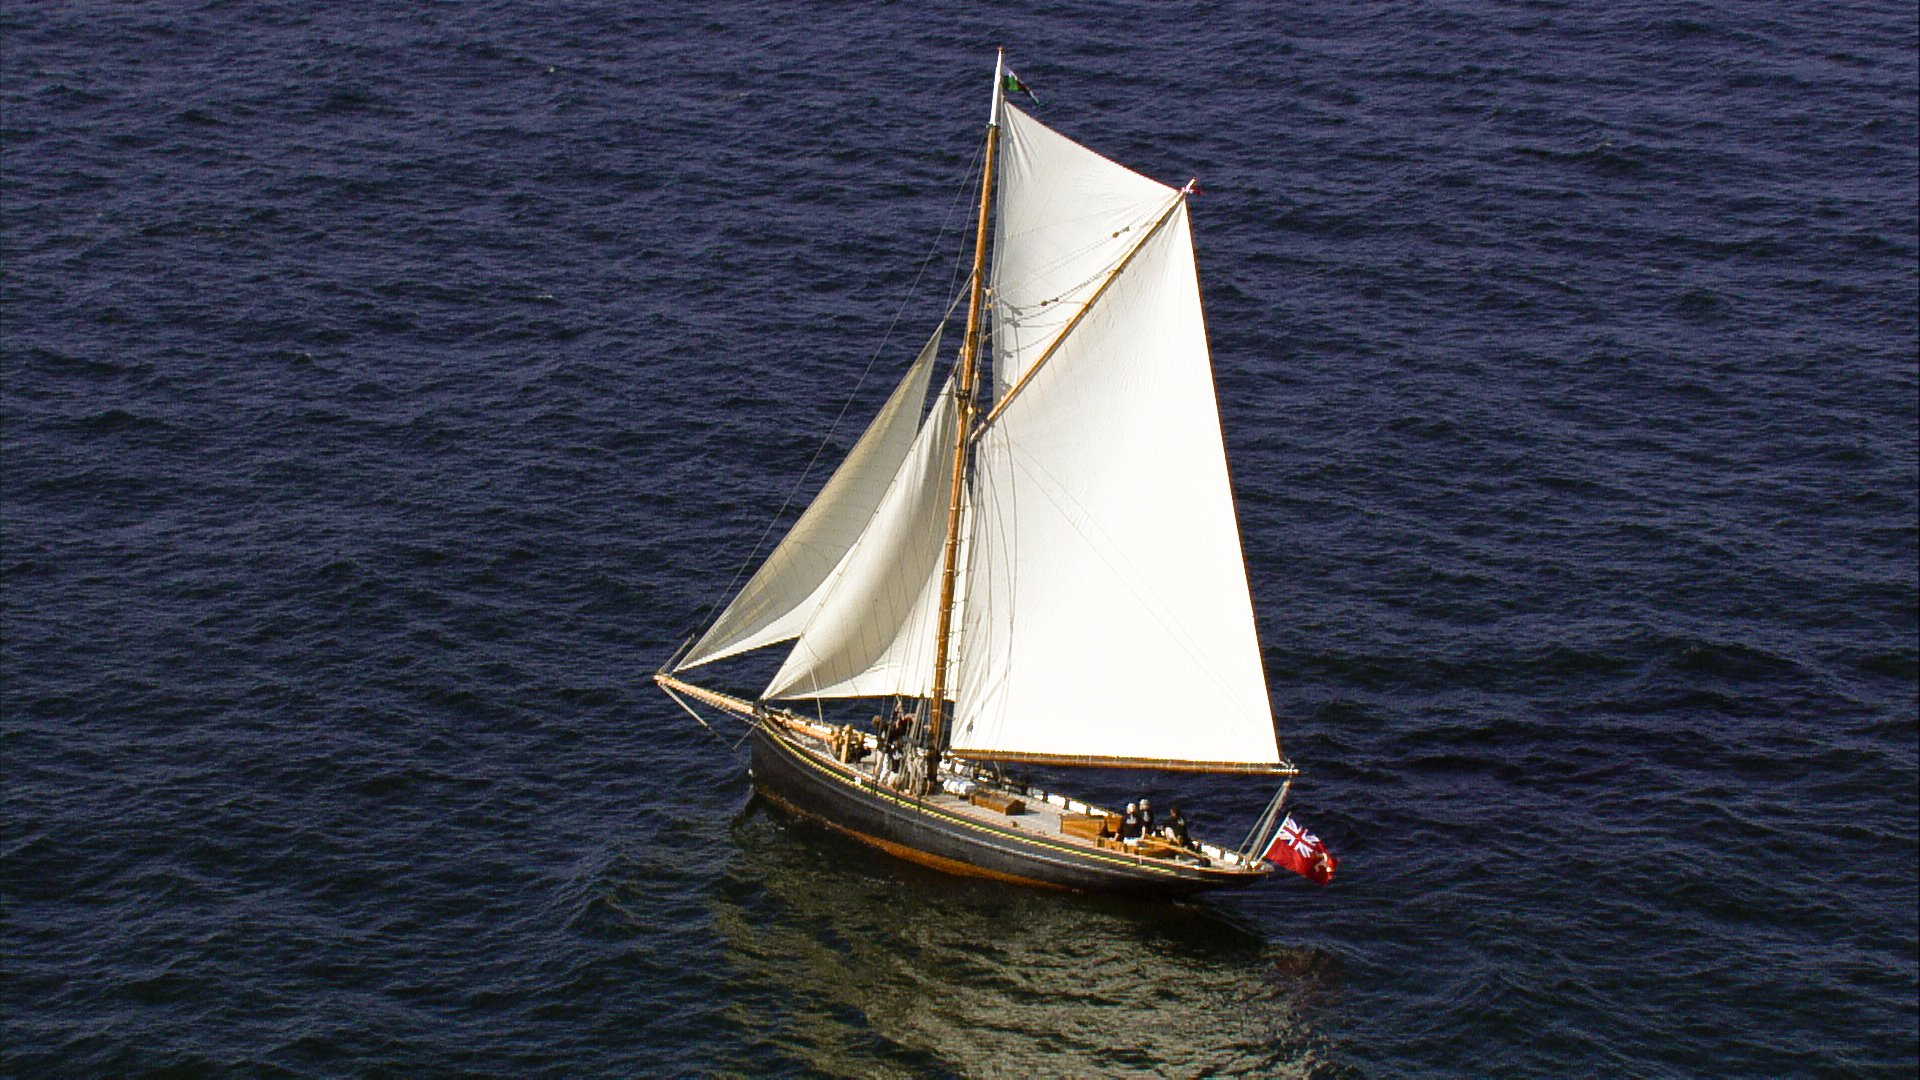 Olga under sail (c) Swansea Museum